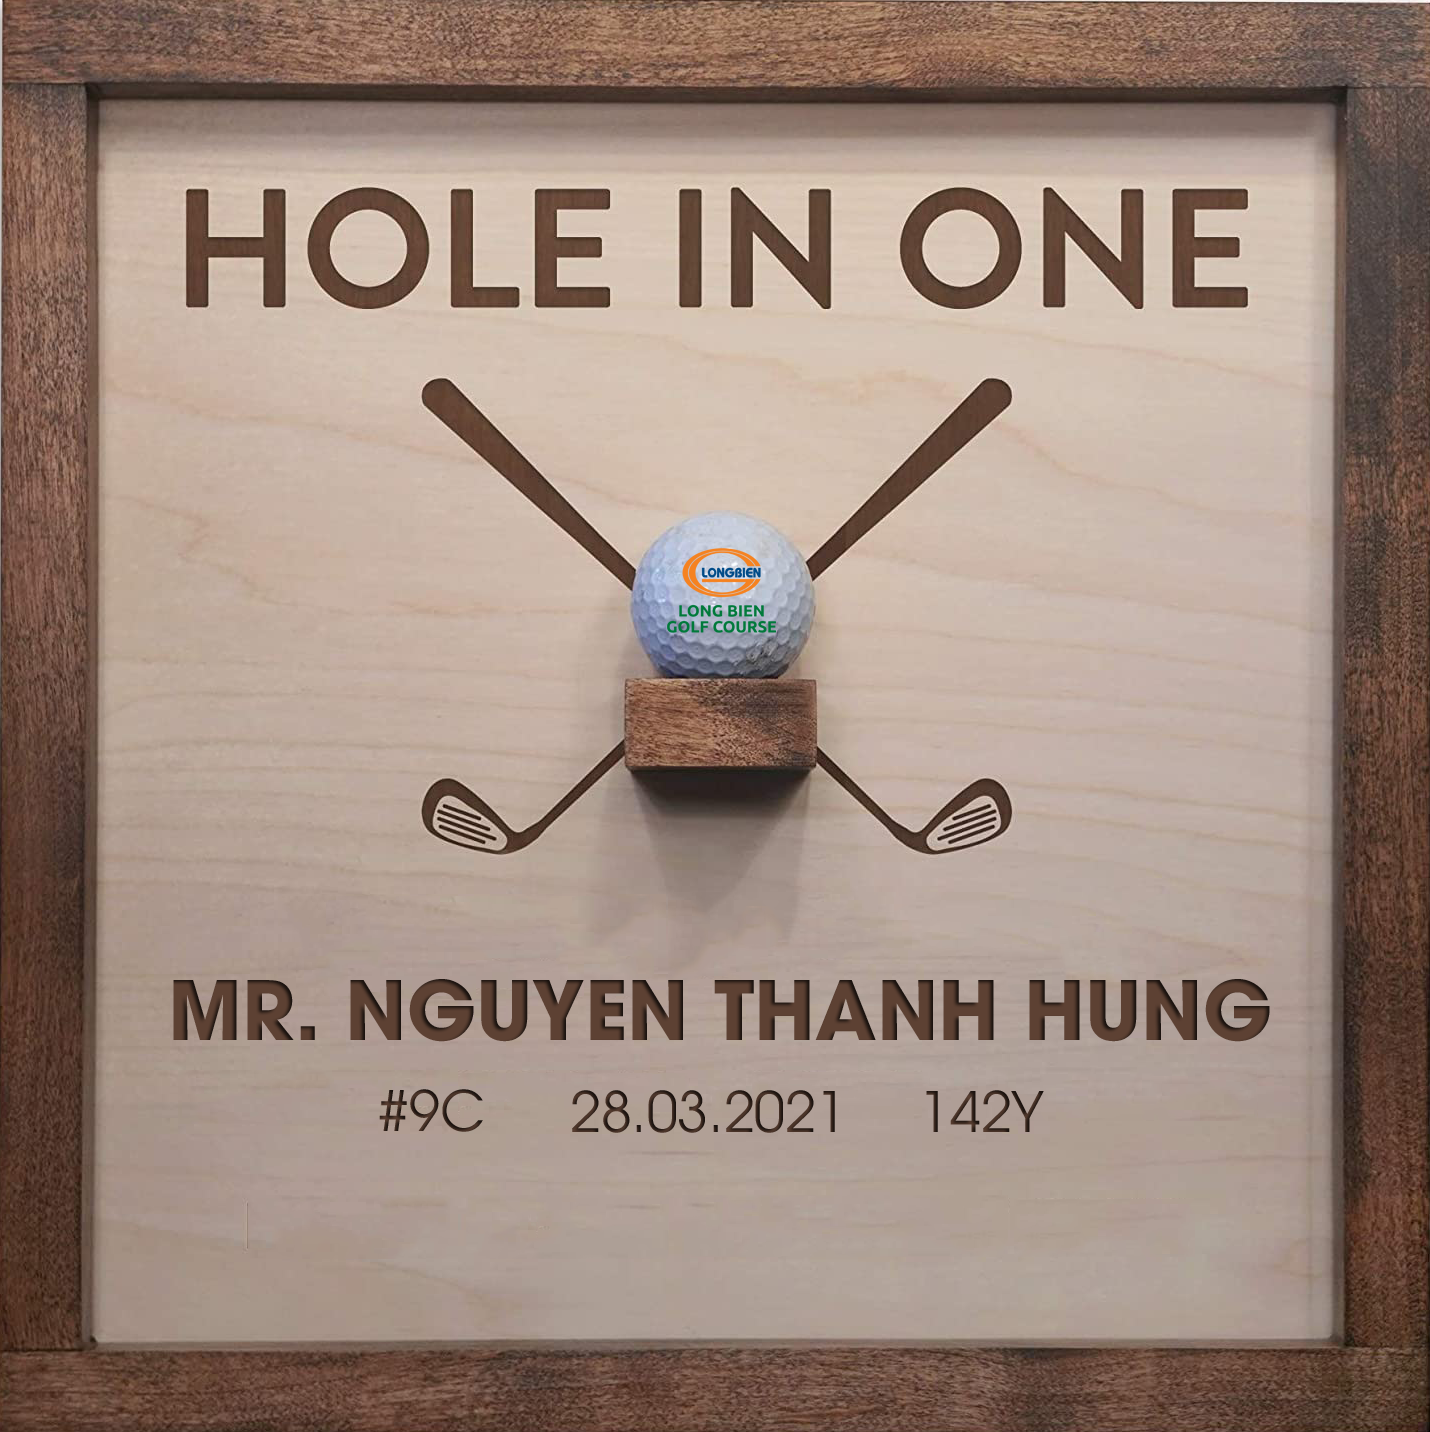 HOLE IN ONE trong night-game